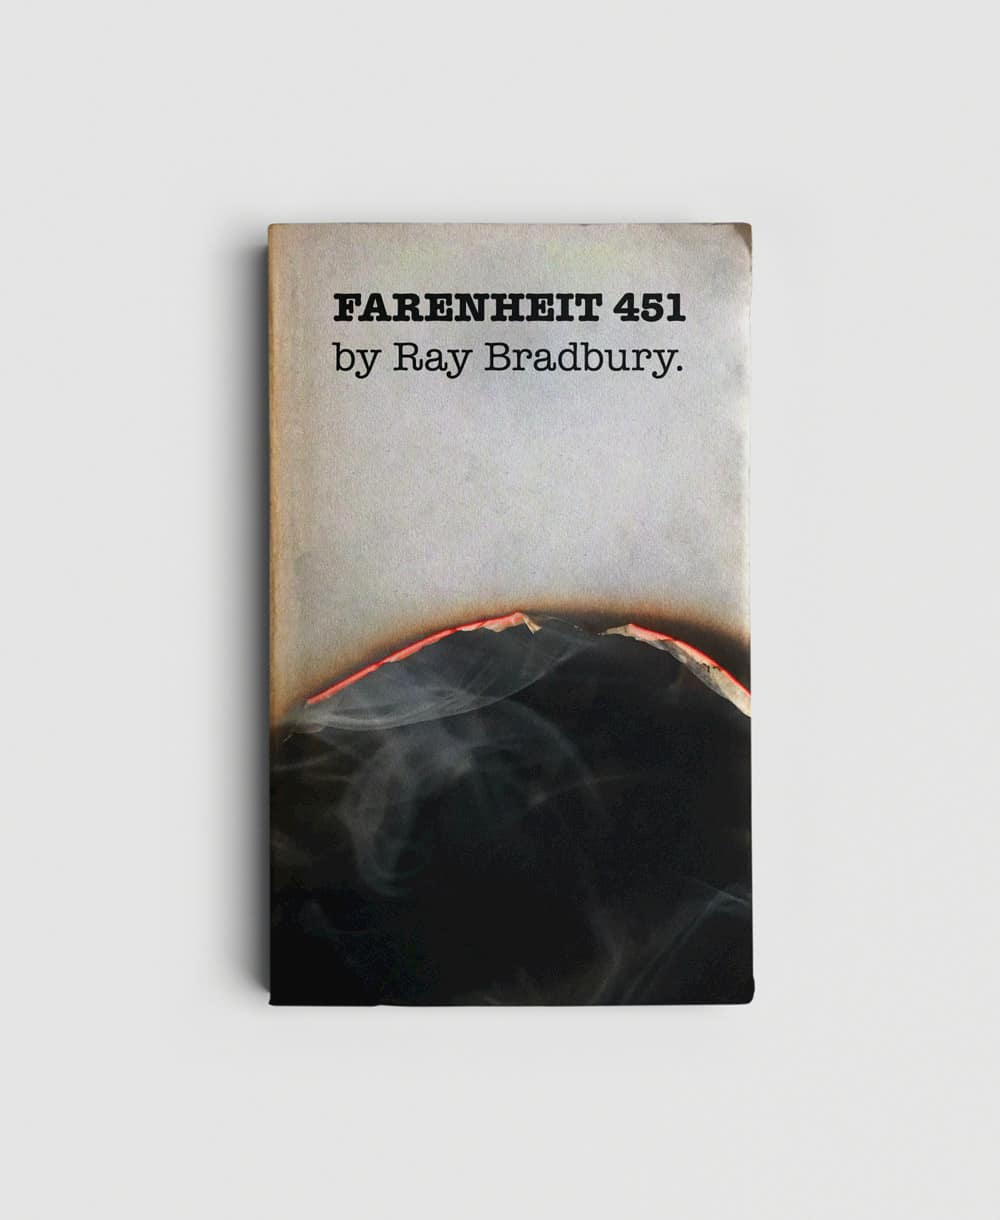 Farenheit 451 cover